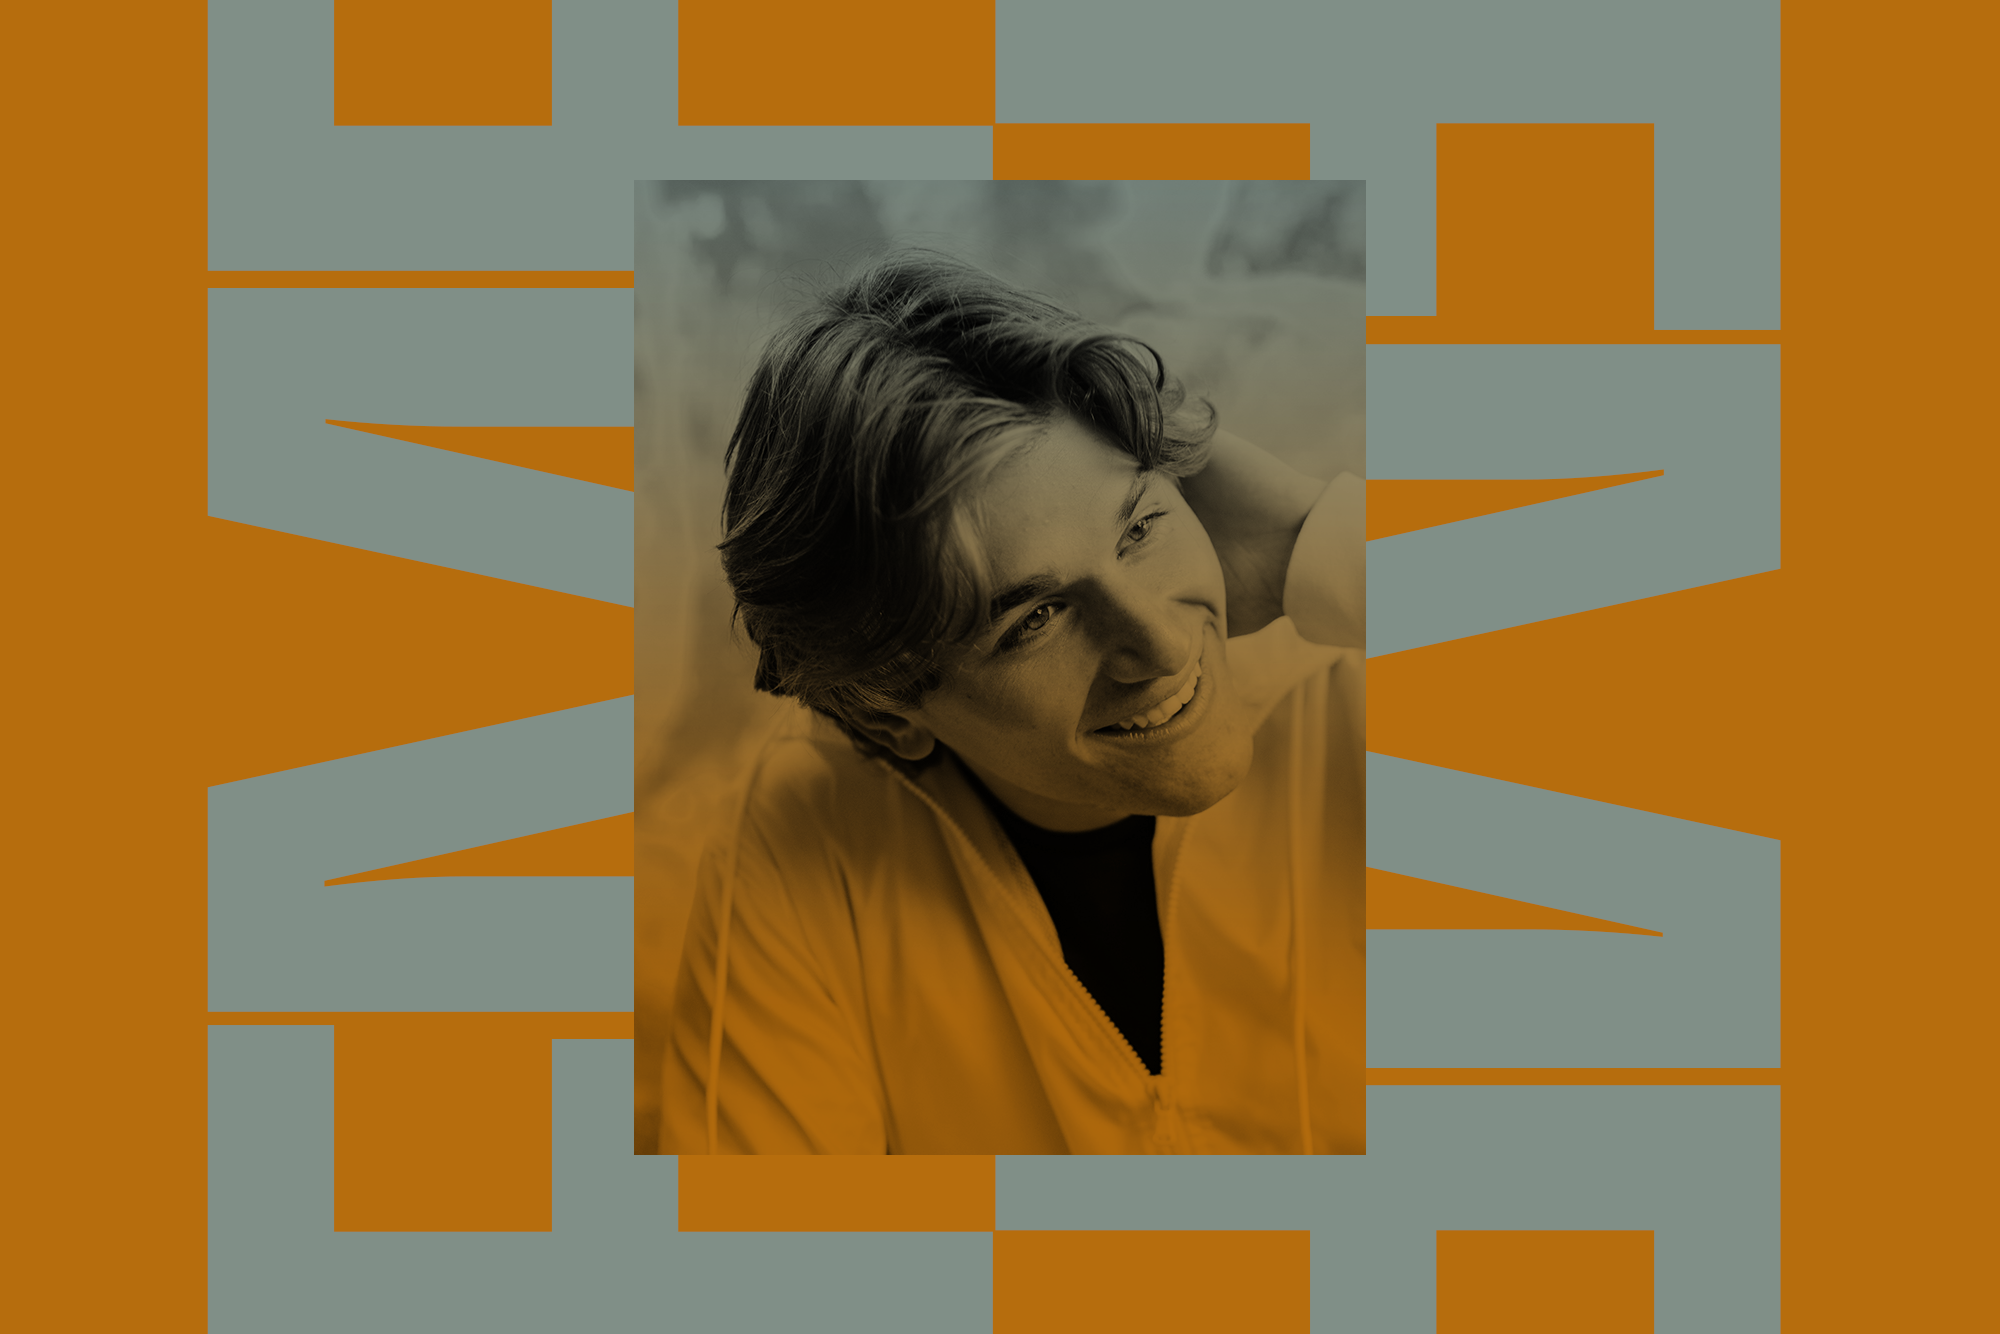 FRESH MUSIC FRIDAY: Jonah Kagen, Arlo Parks, Nick Hames, and More